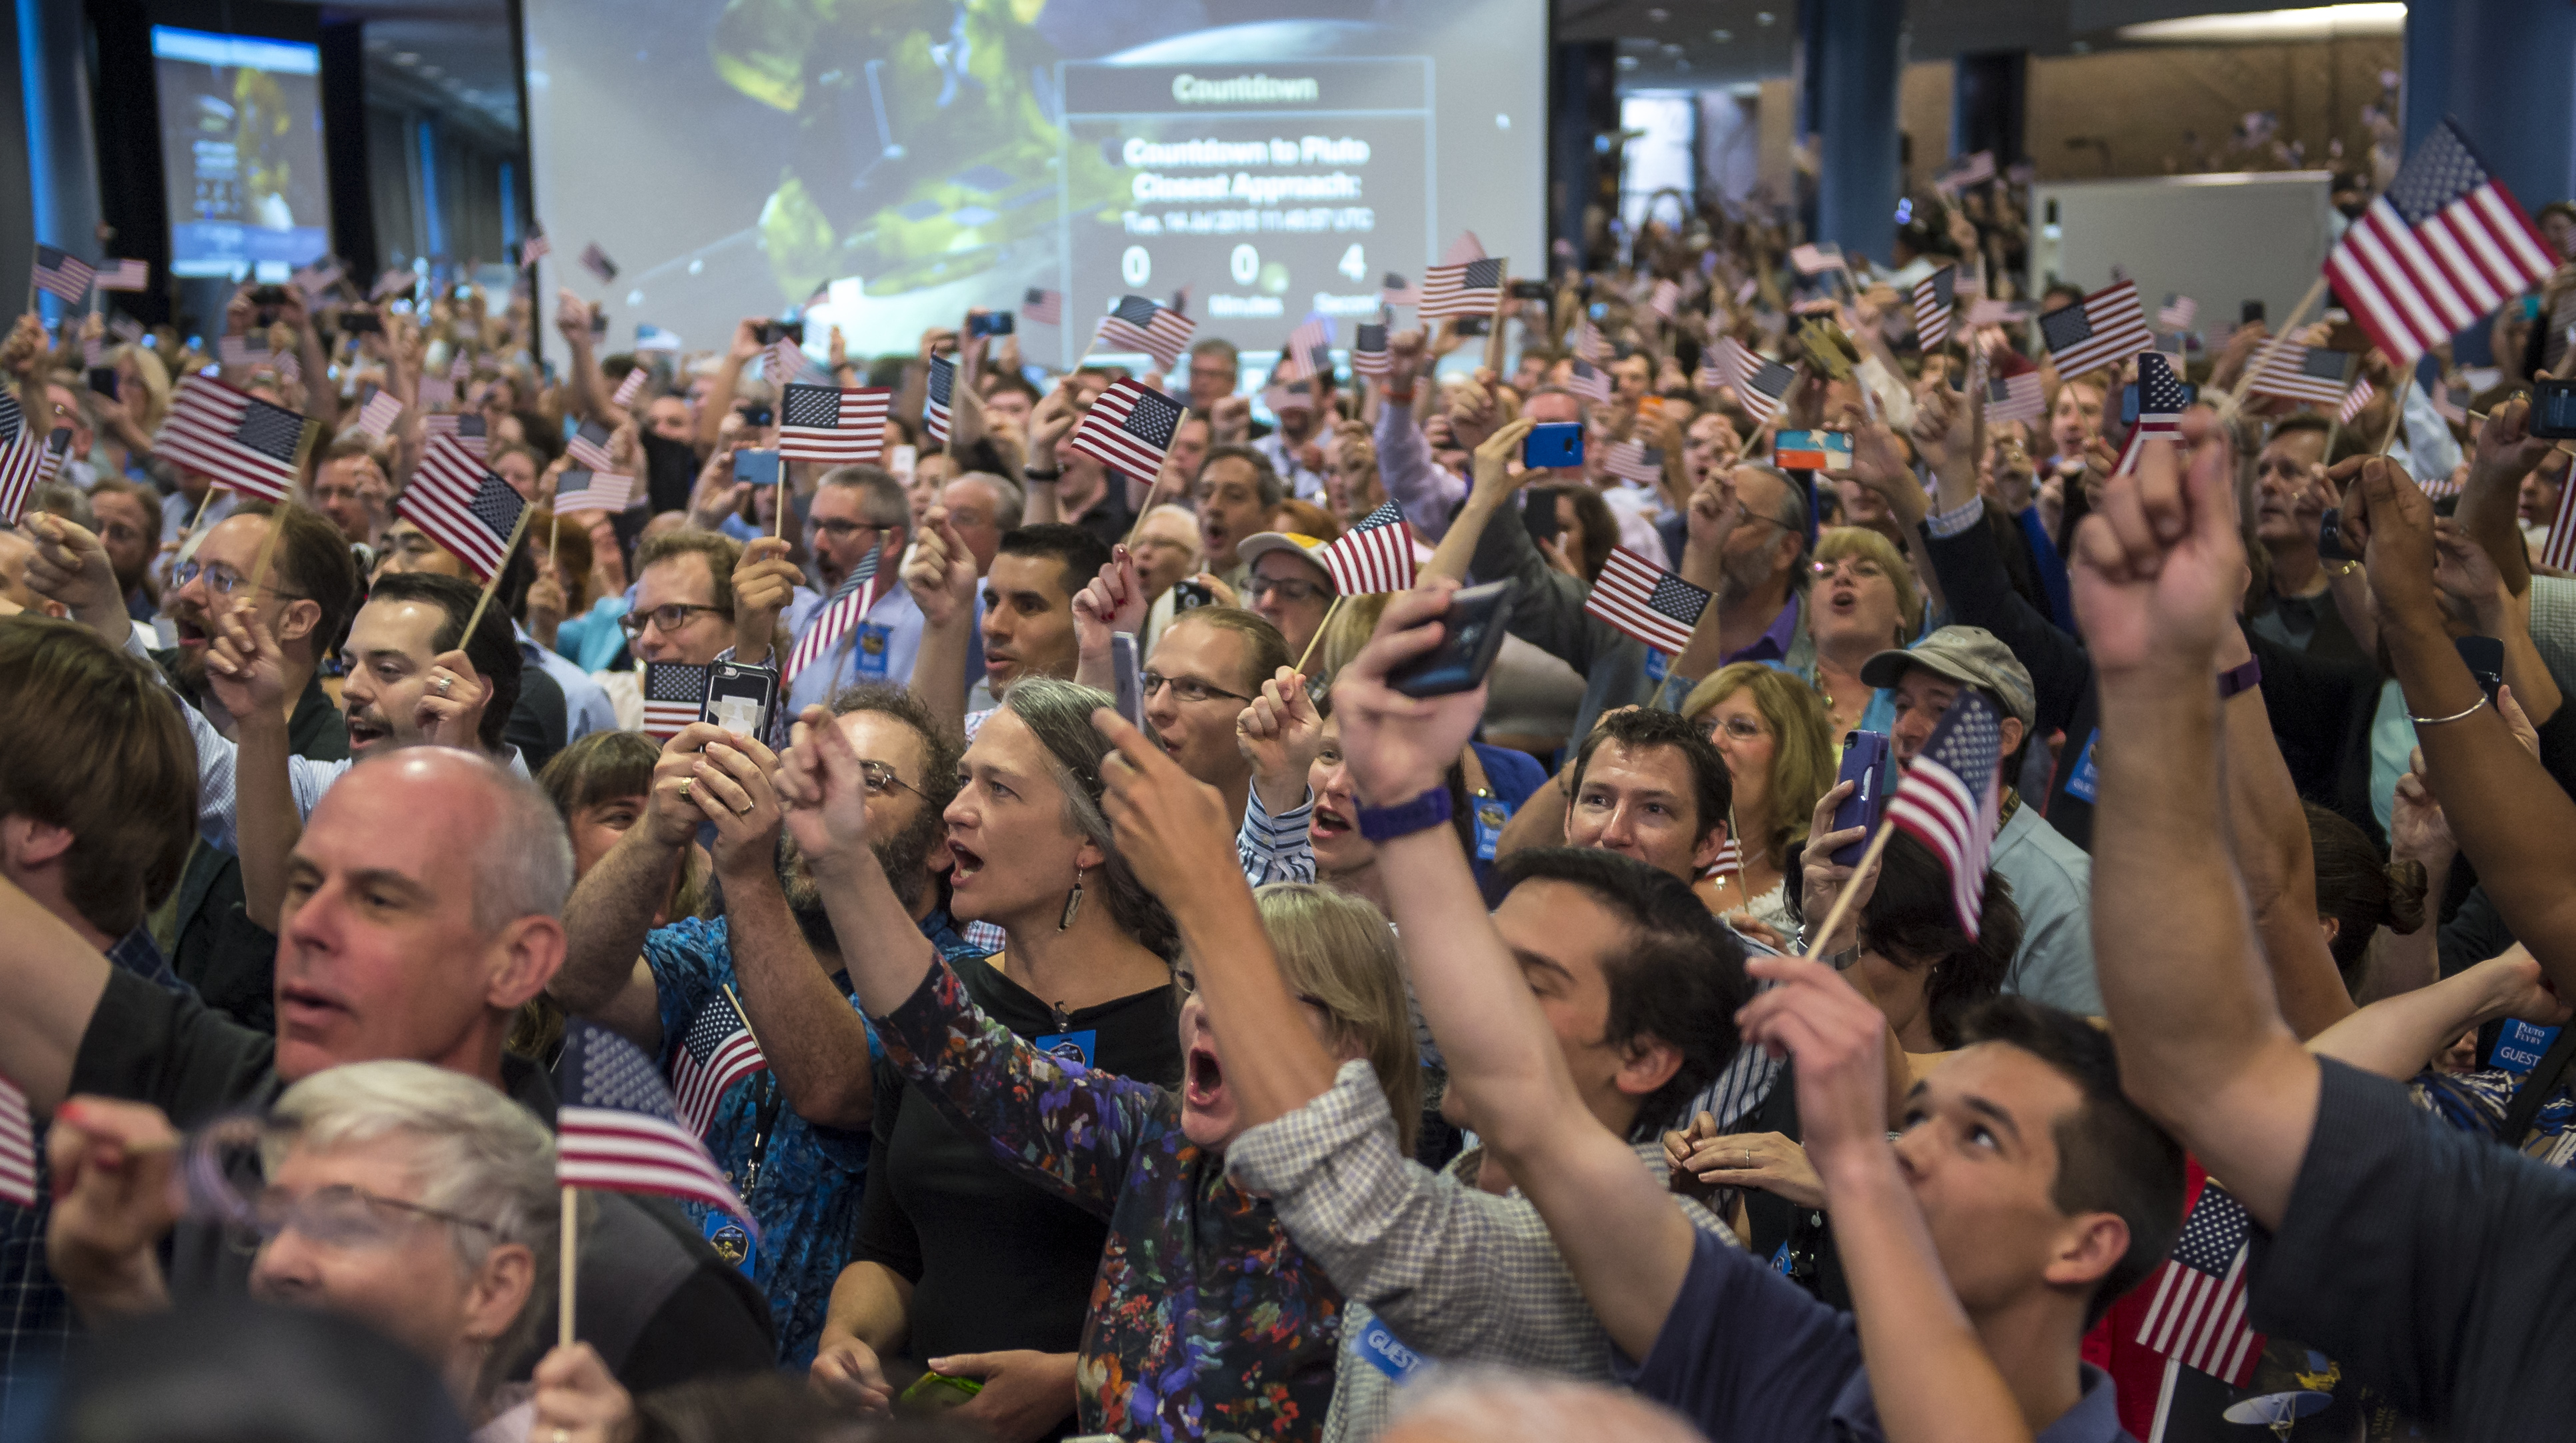 Guest and New Horizons team members countdown to the spacecraft's closest approach to Pluto, Tuesday, July 14, 2015 at the Johns Hopkins University Applied Physics Laboratory (APL) in Laurel, Maryland. Credit: NASA/Bill Ingalls